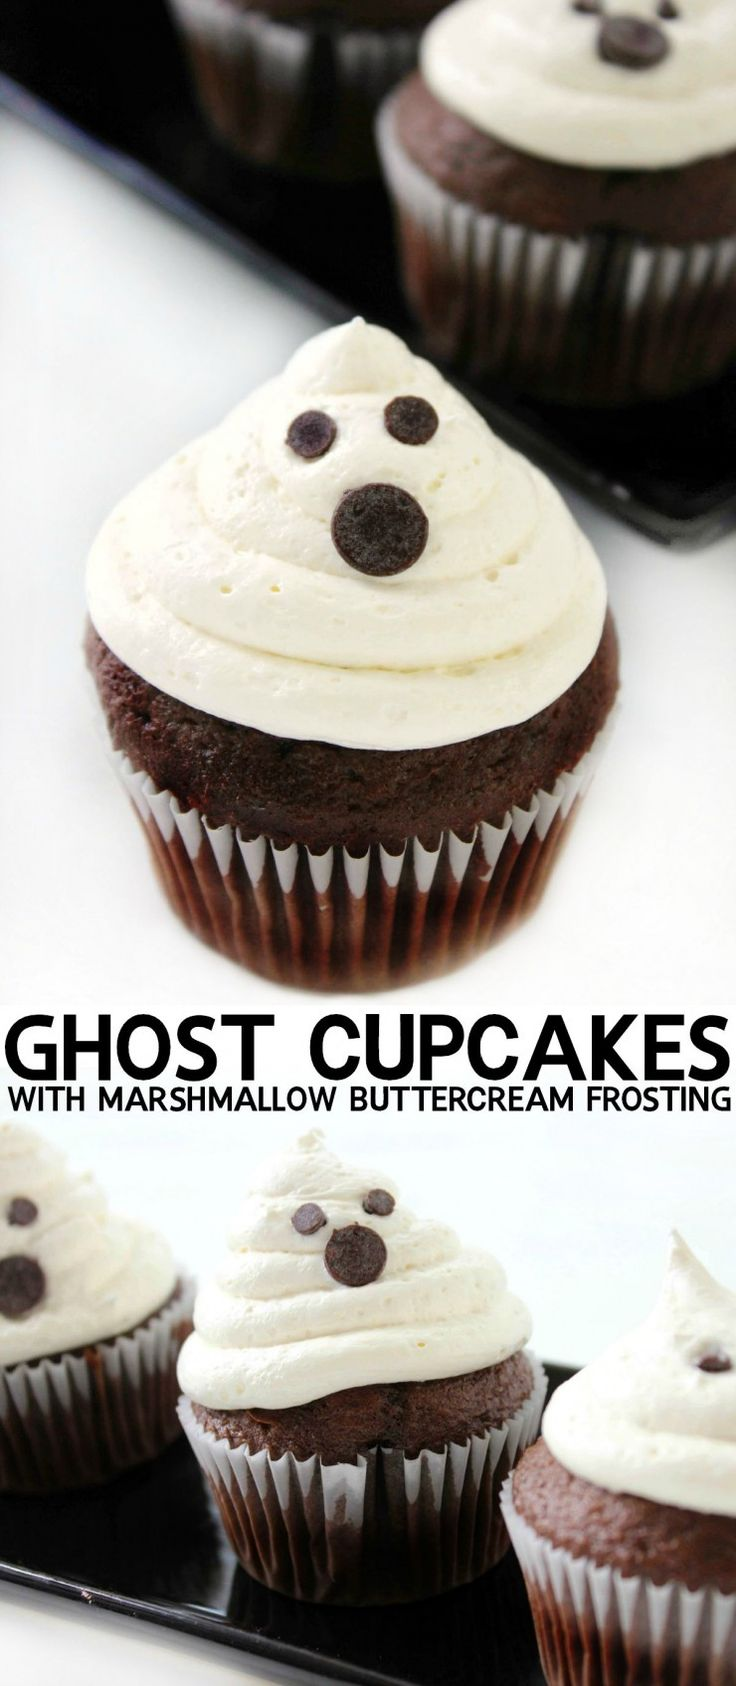 These Ghost Cupcakes with Marshmallow Buttercream Frosting are a spooky Halloween treat without any trick!